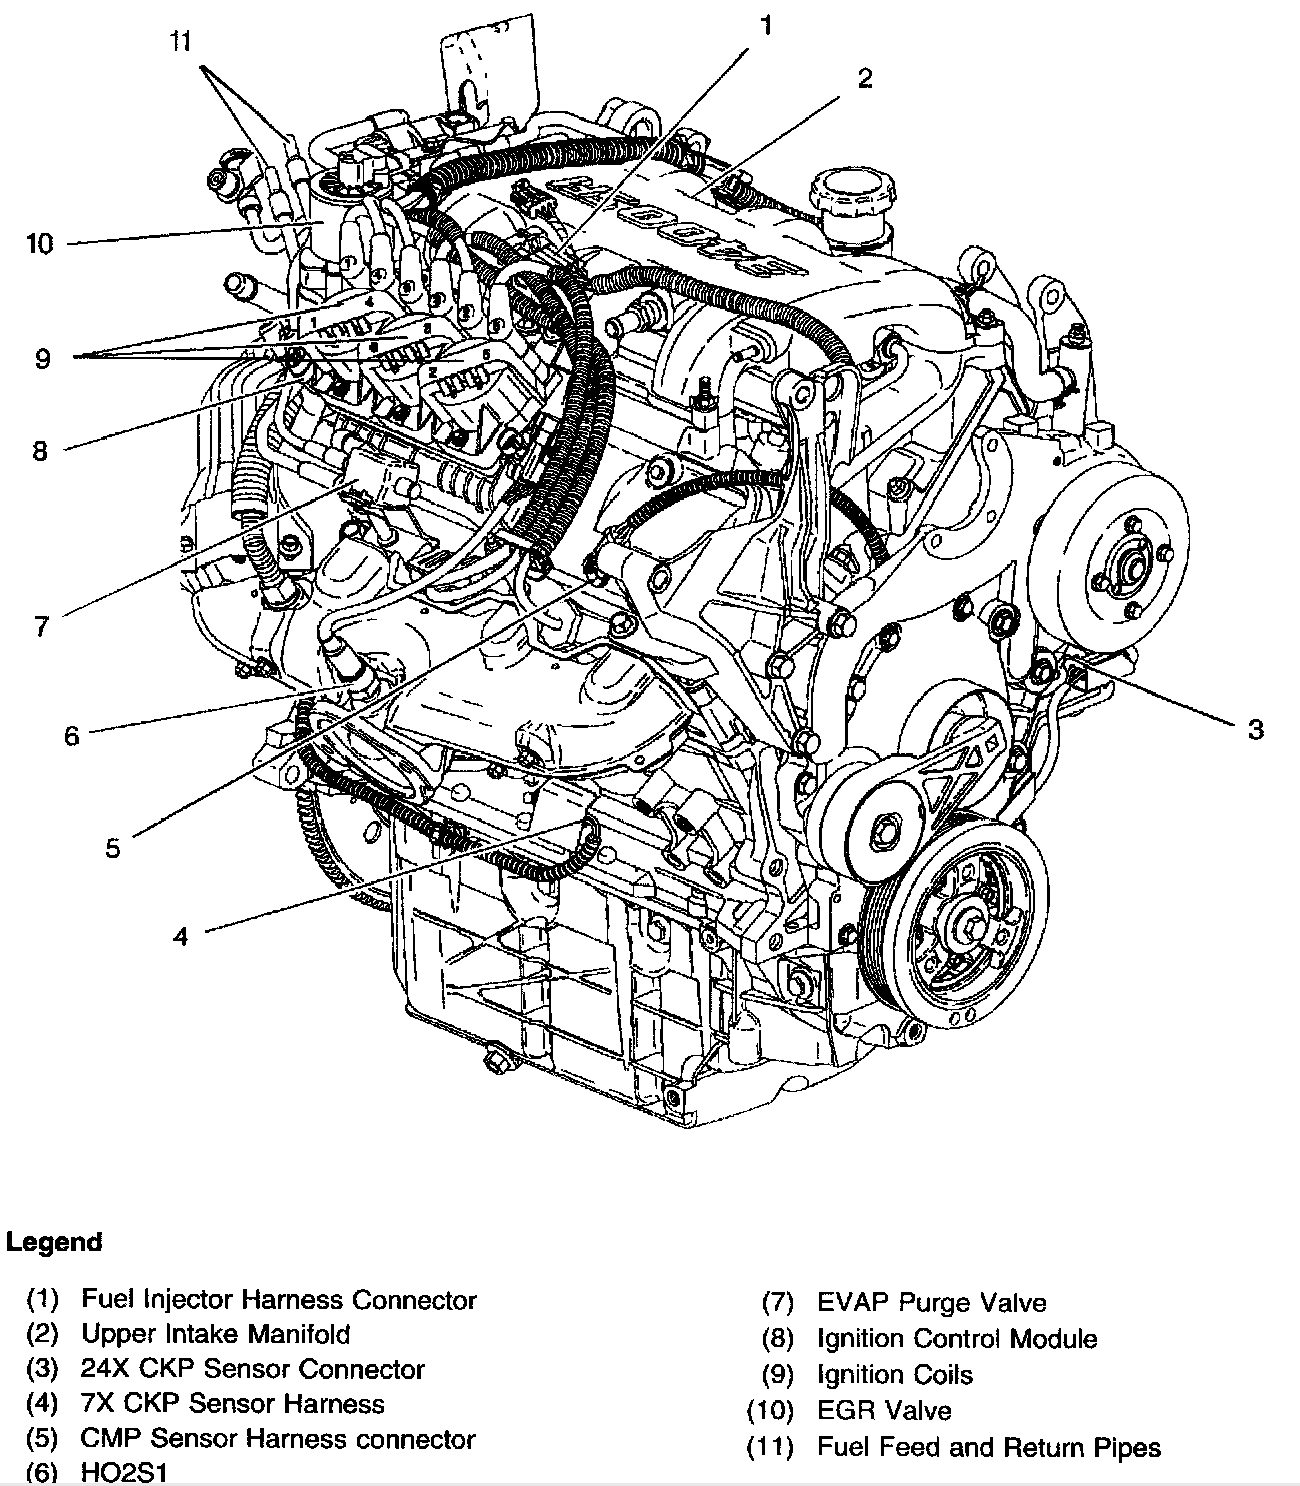 1996 Buick Century 3 1l Engine Diagram Smart Wiring Diagrams Chevy V6 Get Free Image About 3100 Throttle